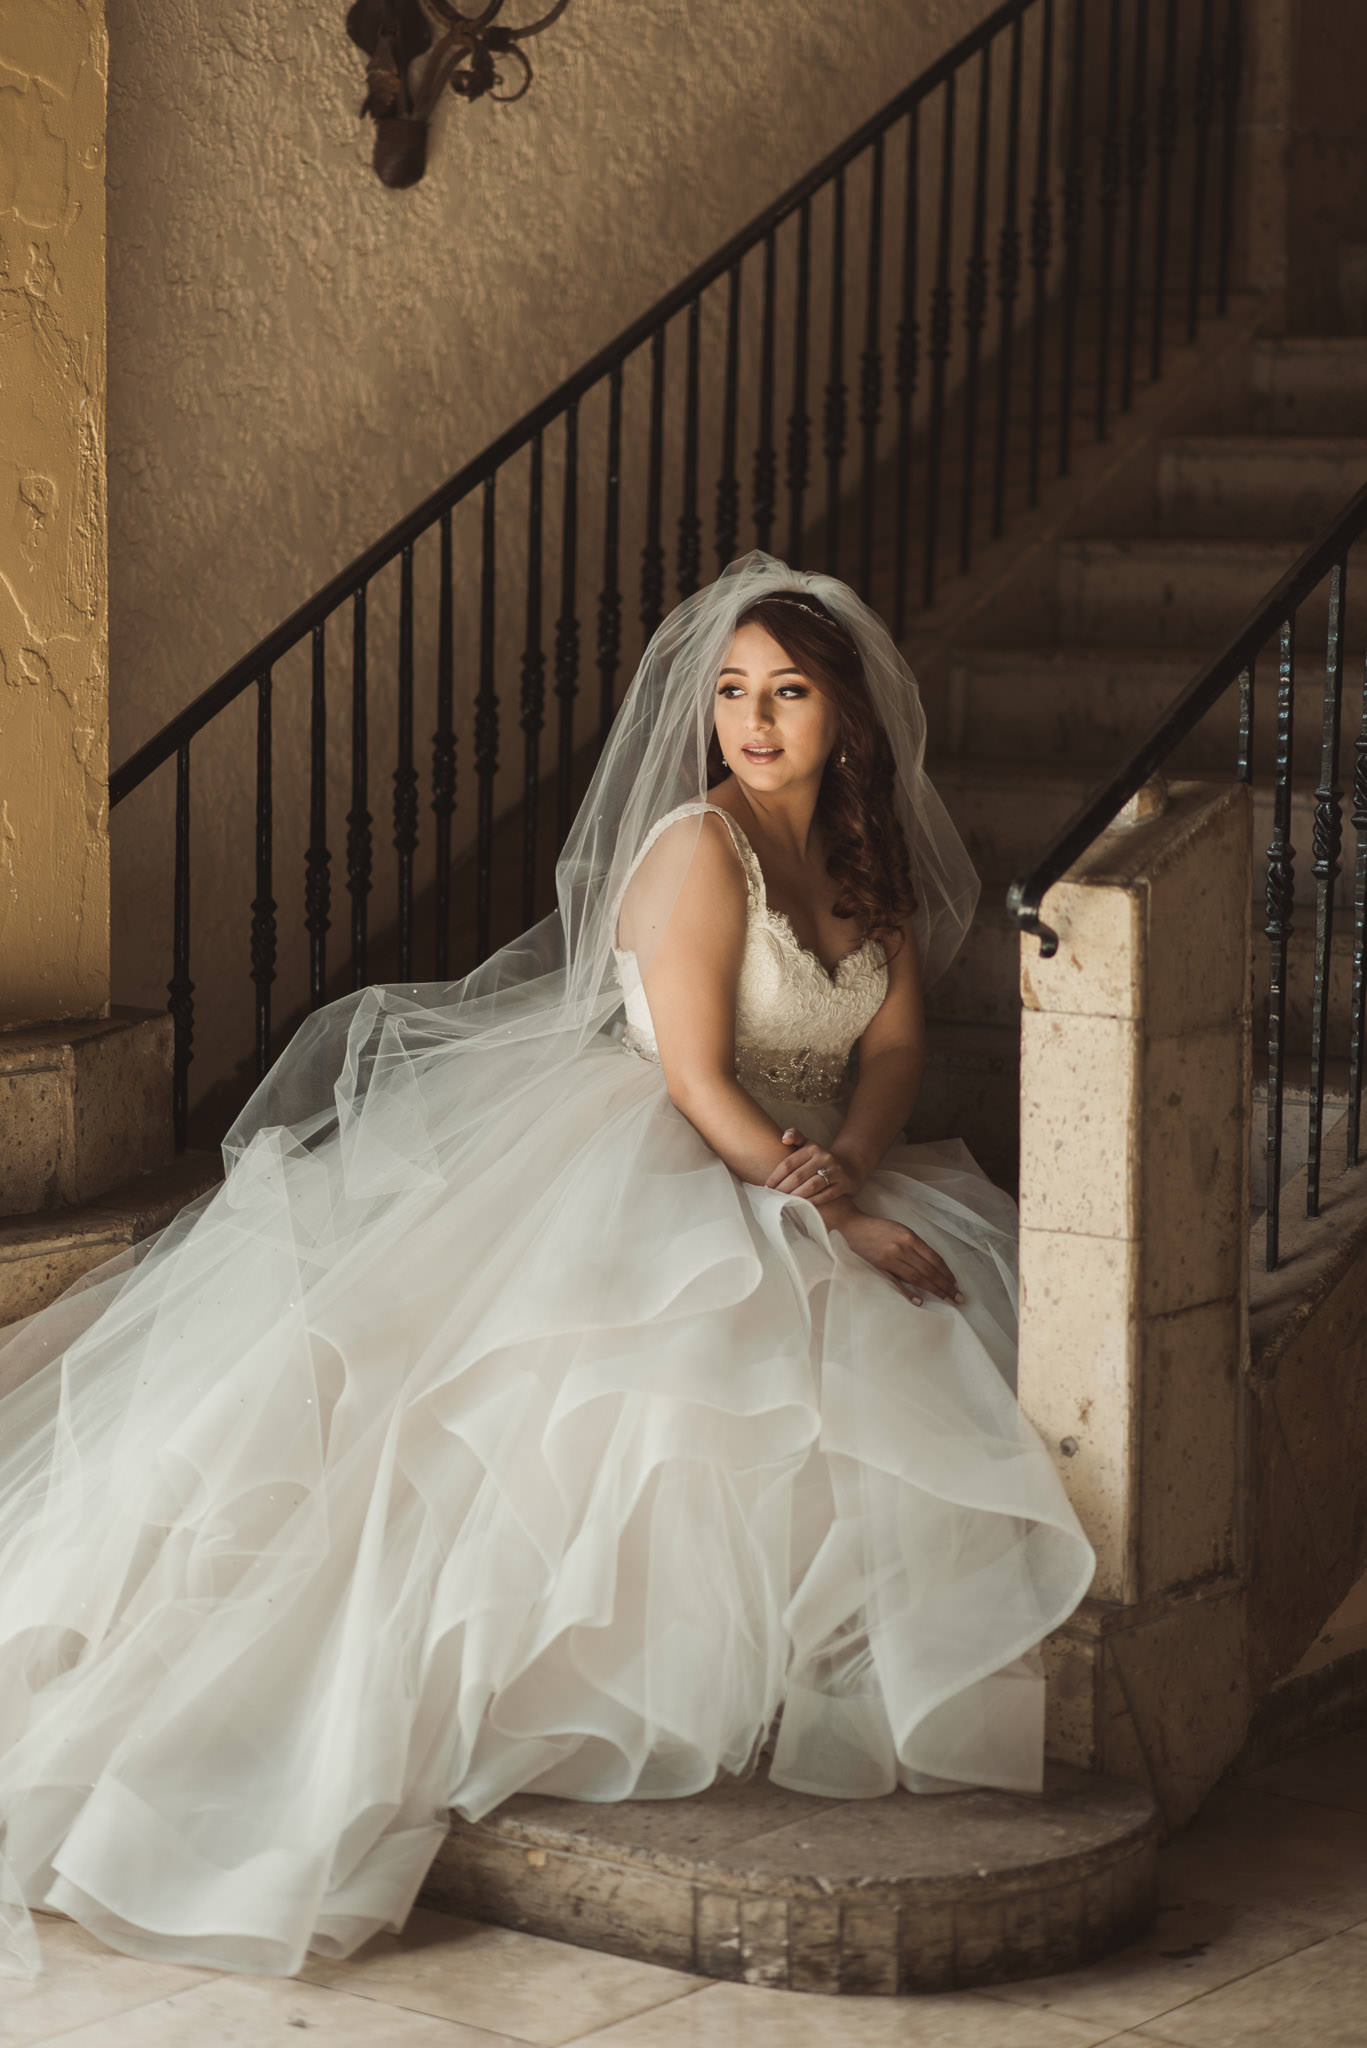 stephanie-bridal-sm3.jpg